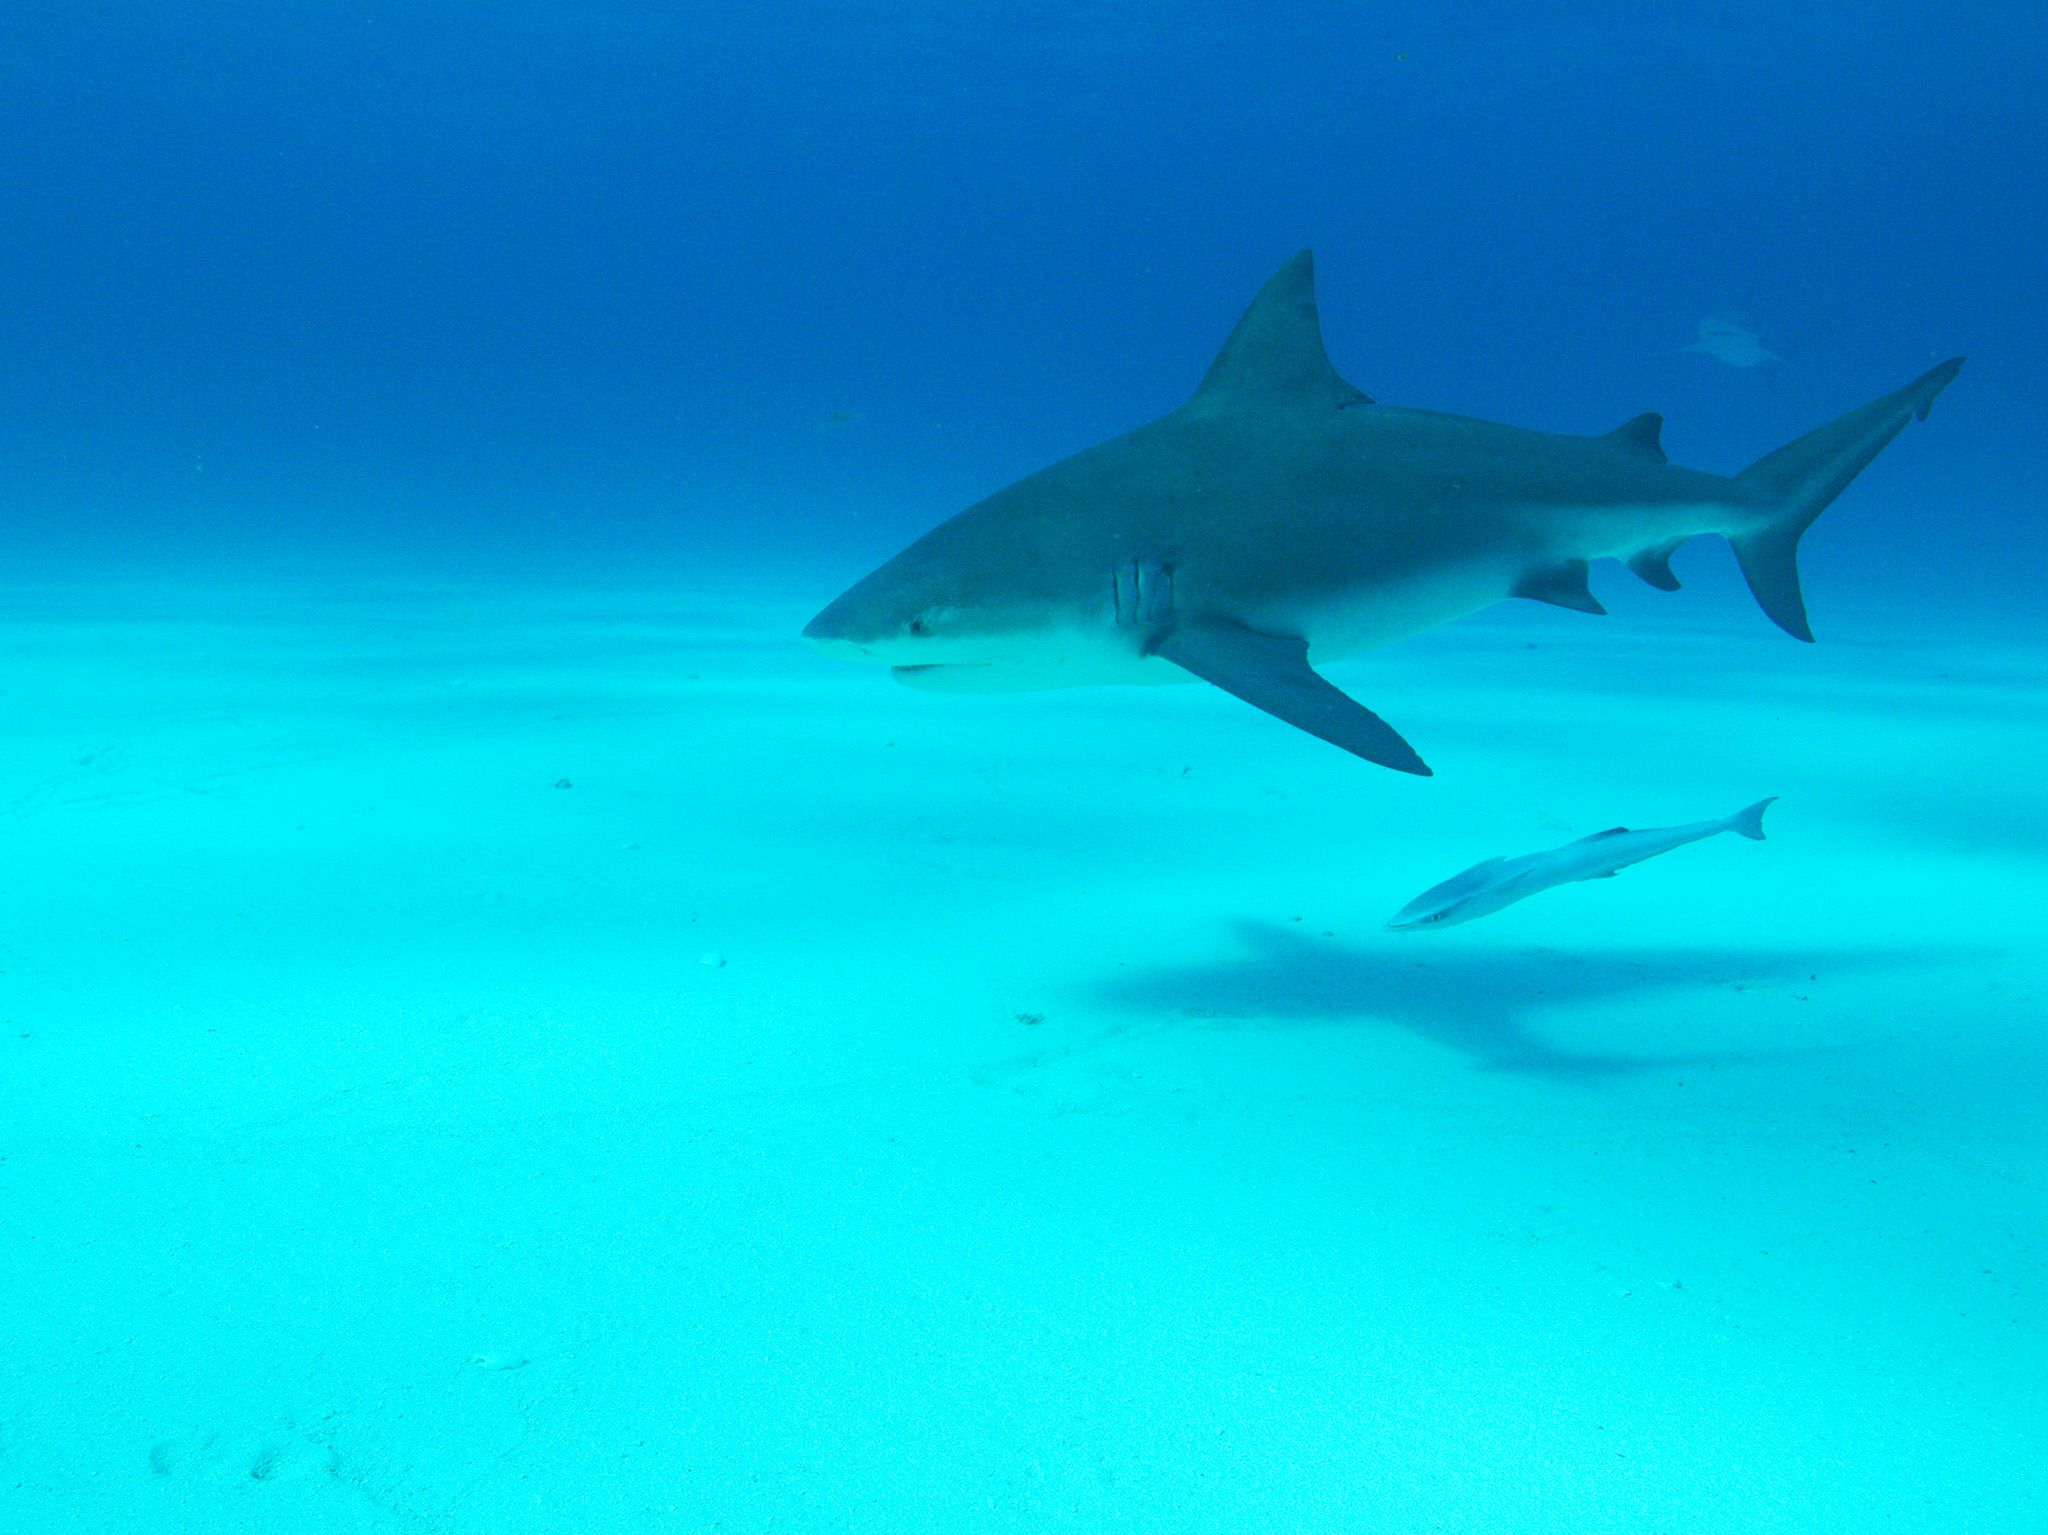 Bull shark swimming near the camera.  This image is from Forecast Shark Attack. [Photo of the day - ژولیه 2019]